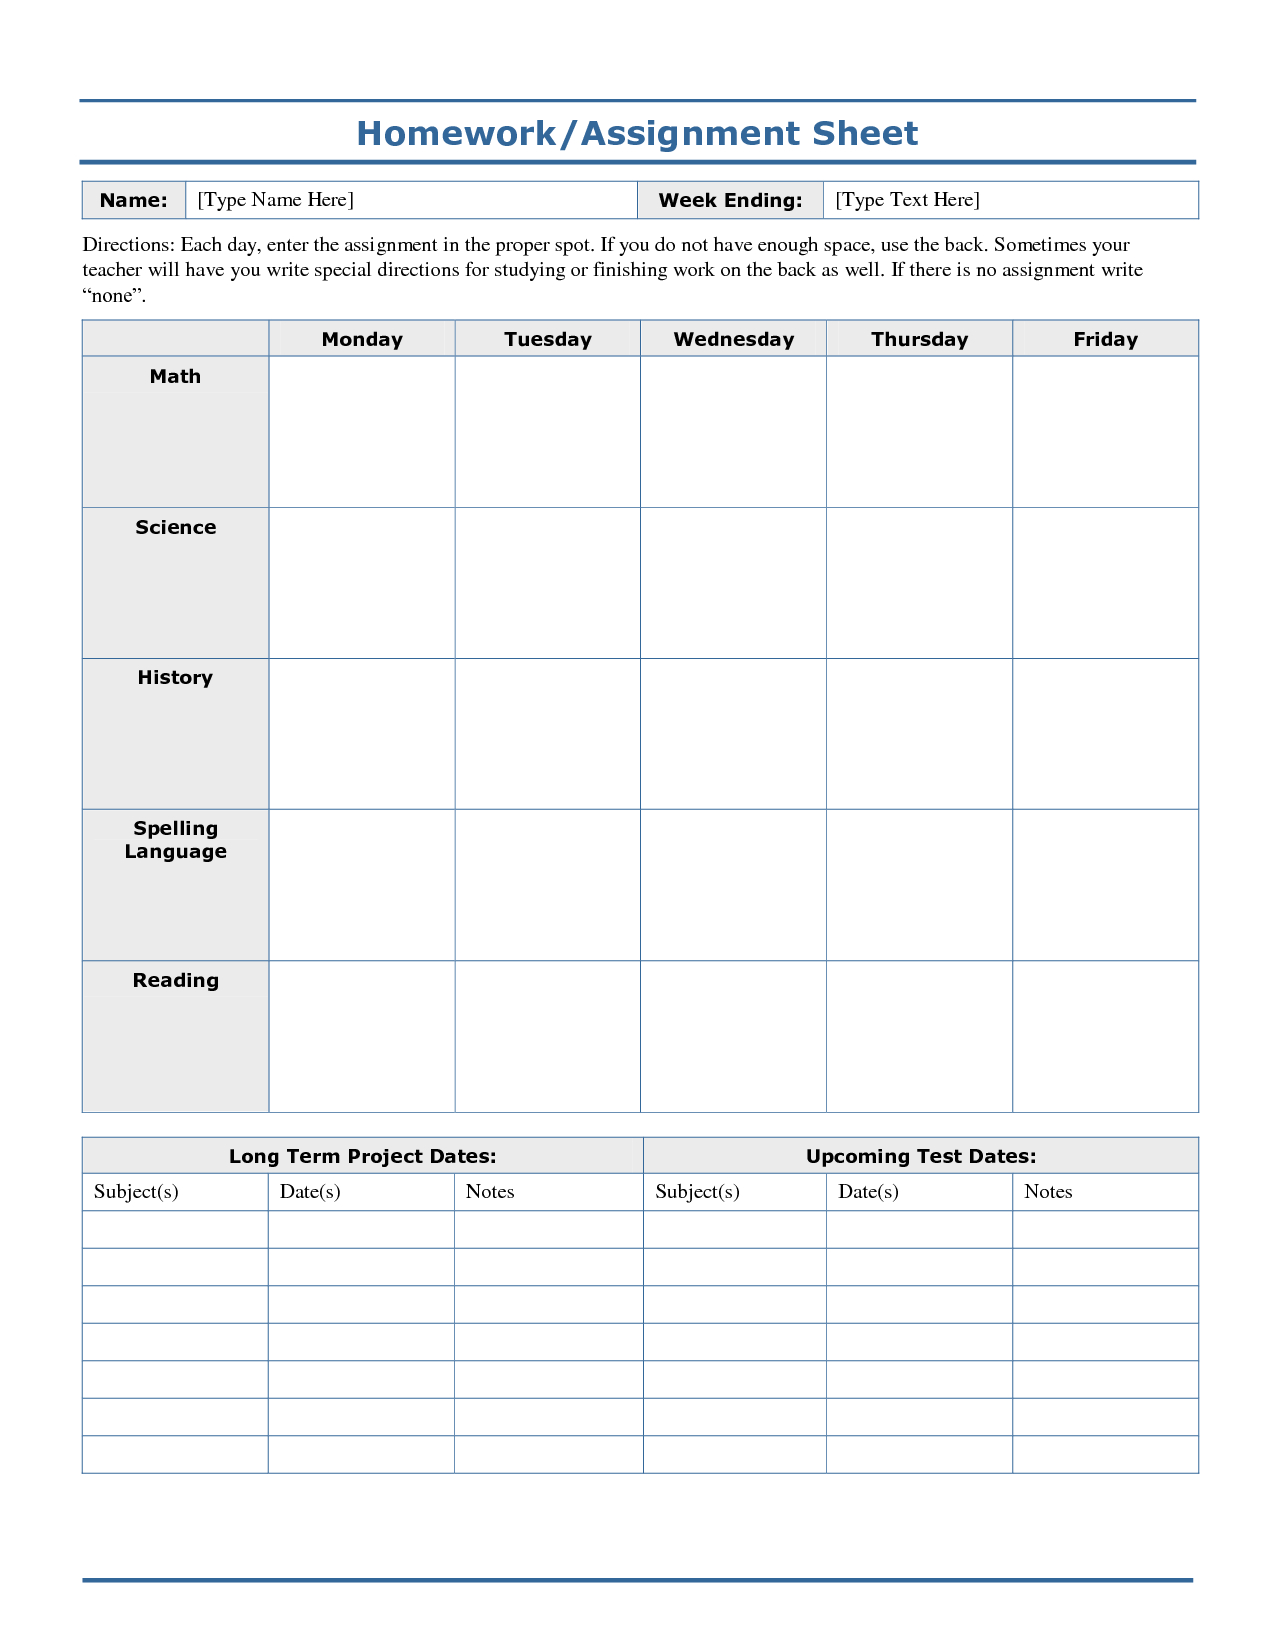 Weekly+Homework+Assignment+Sheet+Template | Logs | Homework Sheet - Free Printable Homework Assignment Sheets